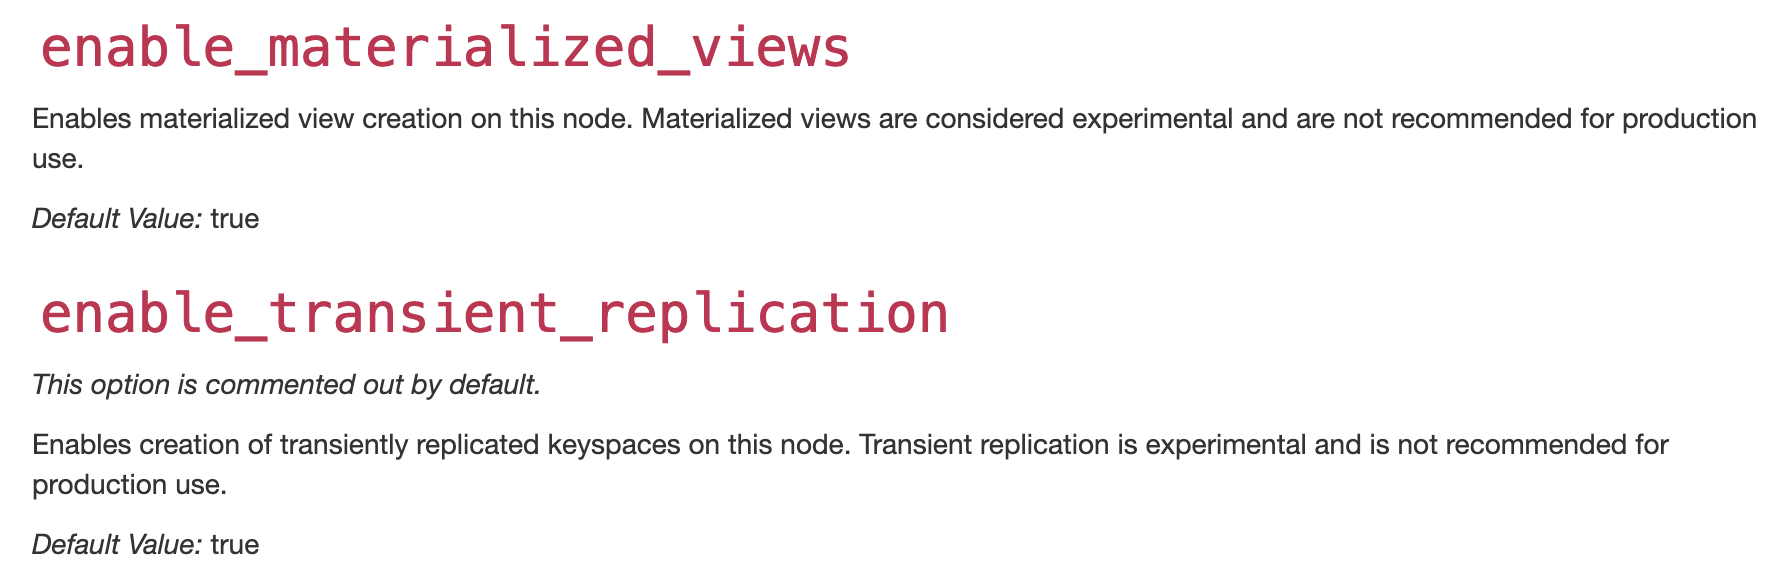 Questions about enable_materialized_views and